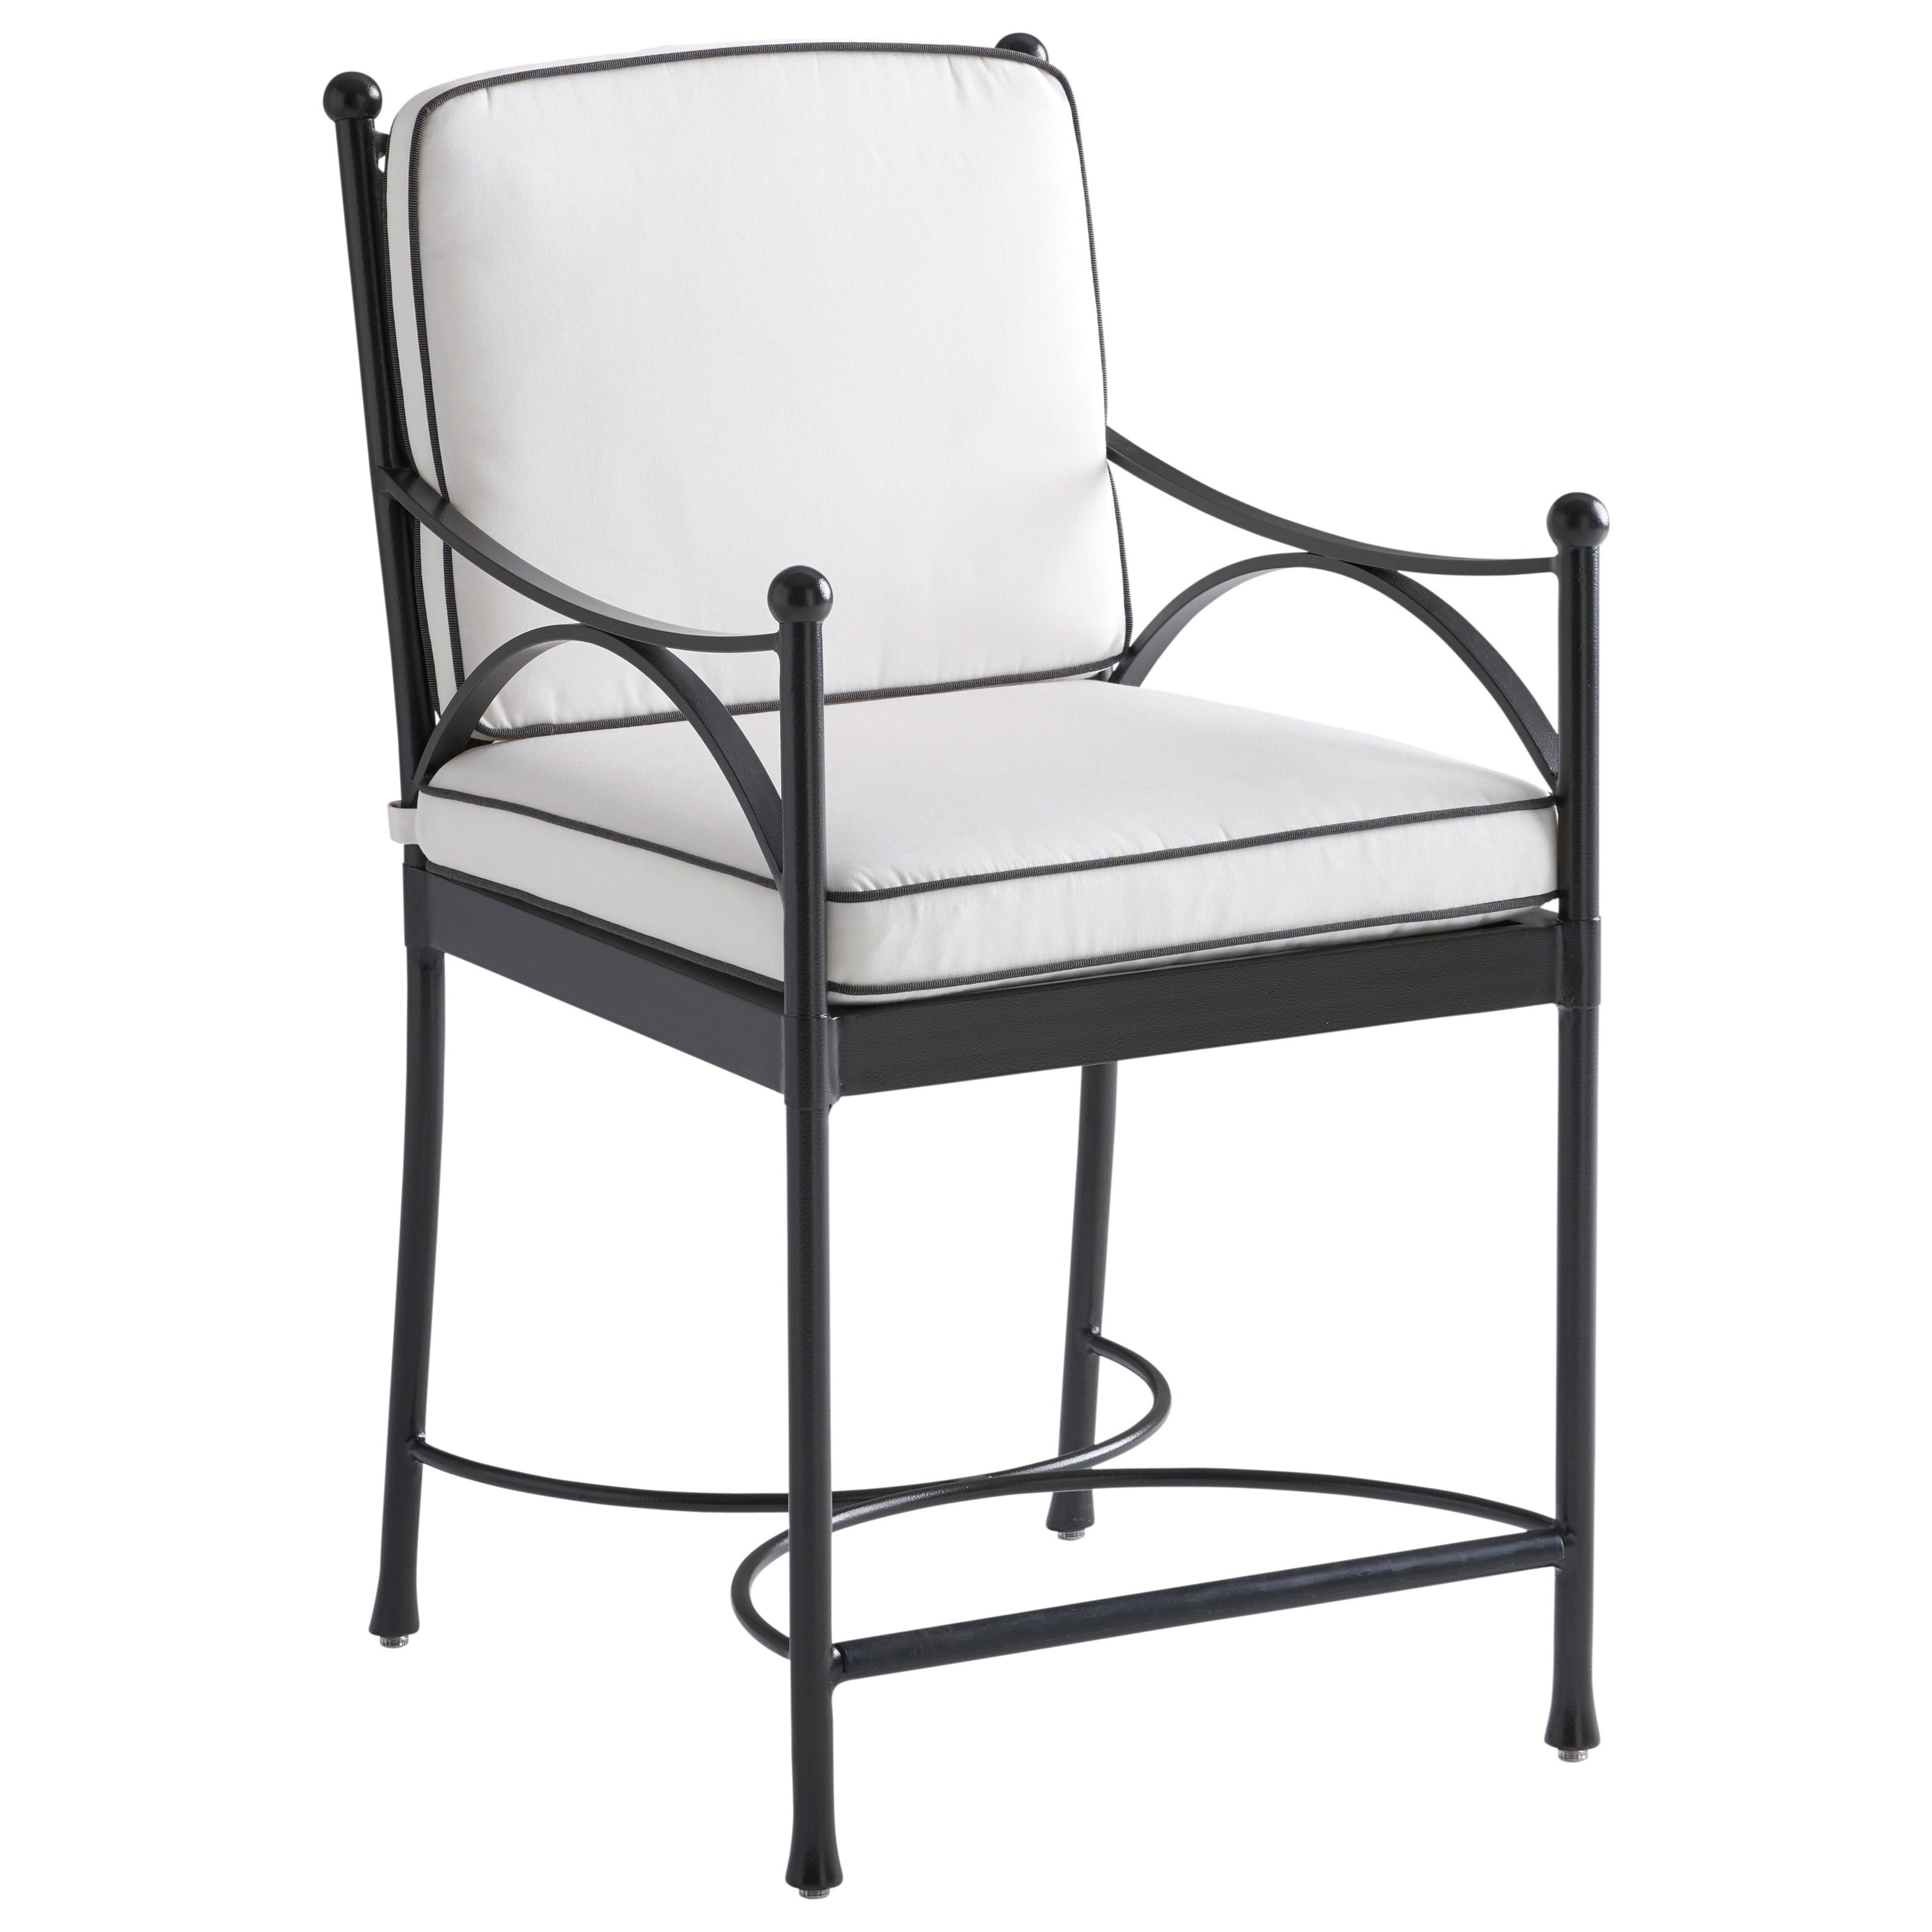 Pavlova Outdoor Counter Stool by Tommy Bahama Outdoor Living at Baer's Furniture